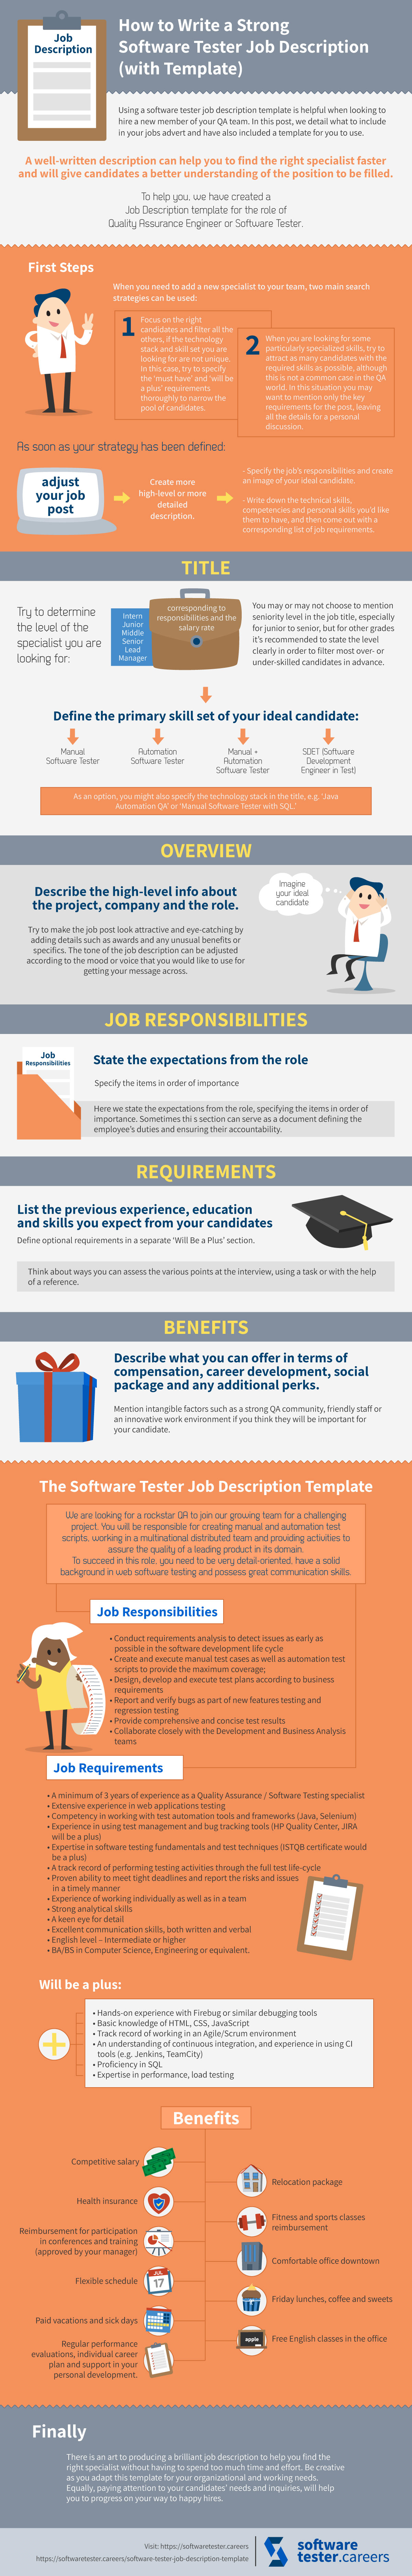 How to Write a Strong Software Tester Job Description (with Template)